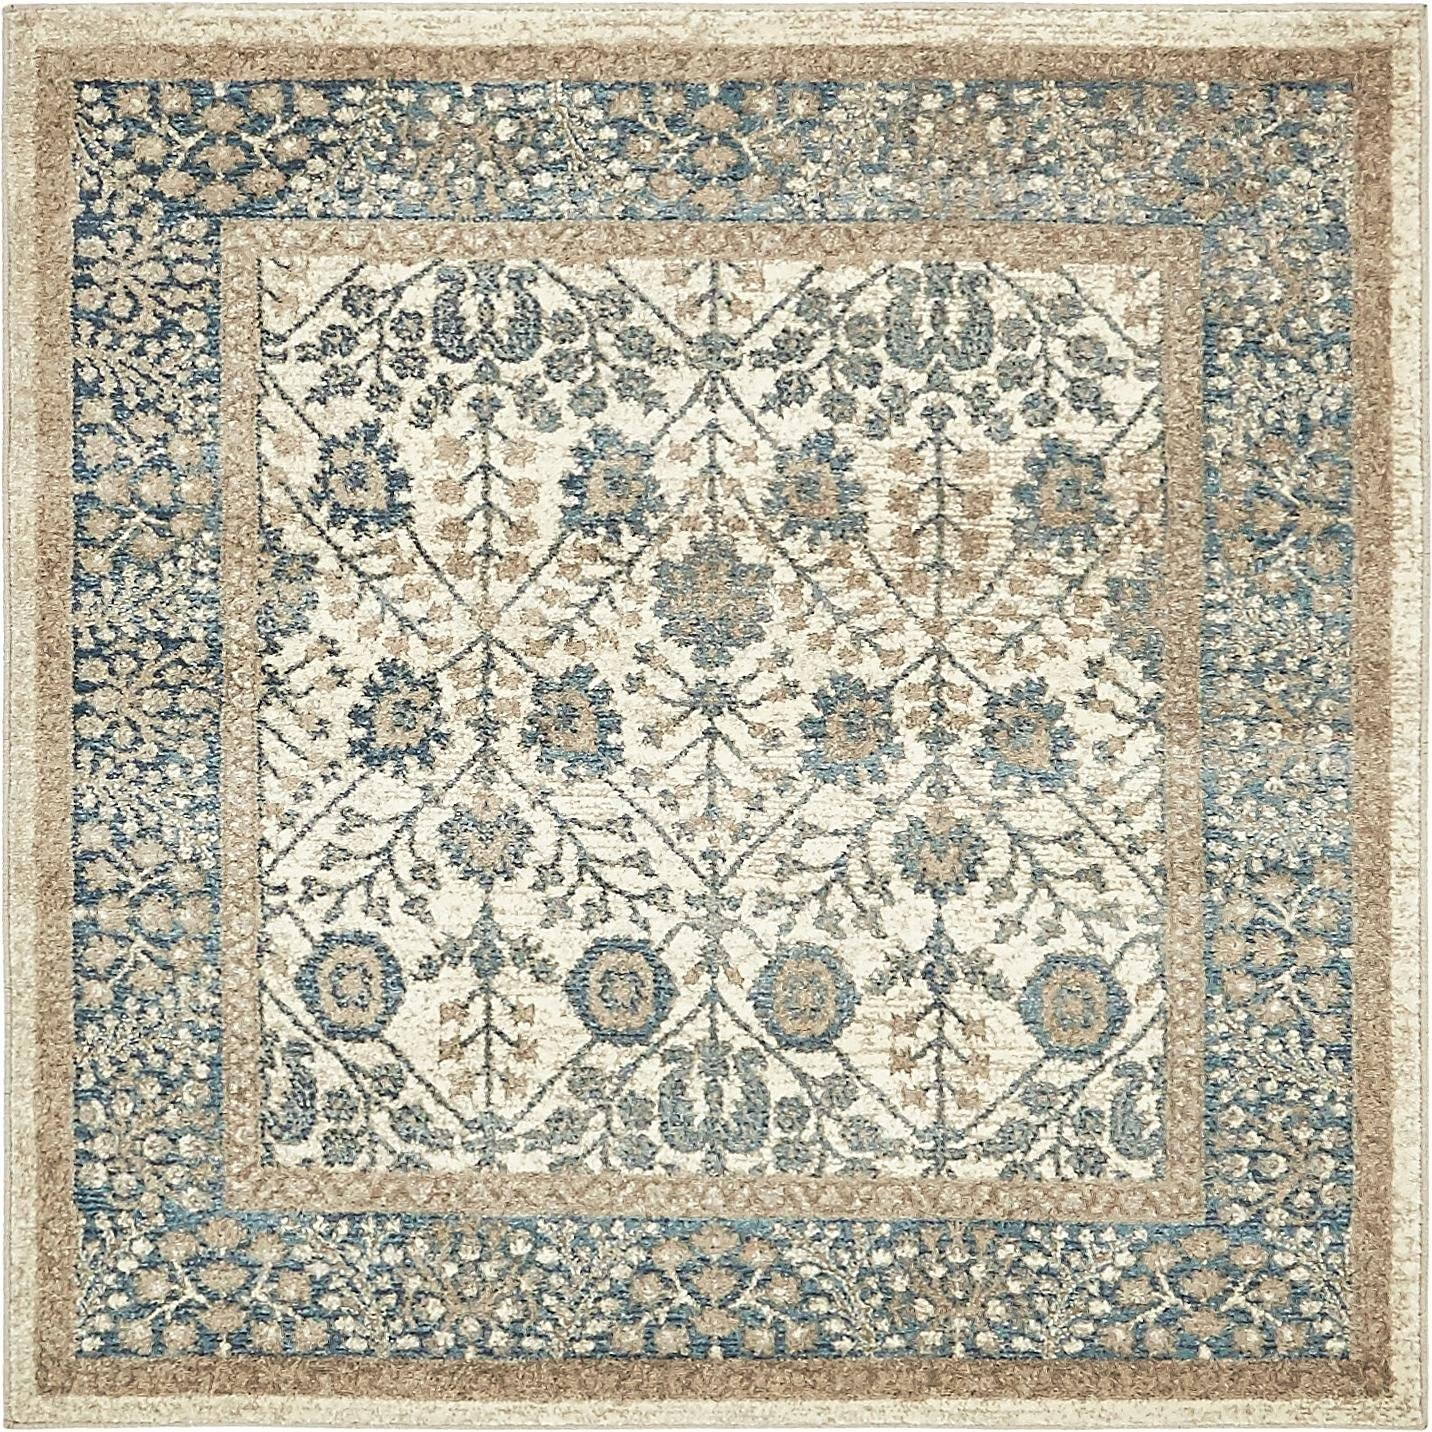 Unique Loom Salzburg Collection Traditional Oriental Cream Square Rug 4 0 x 4 0